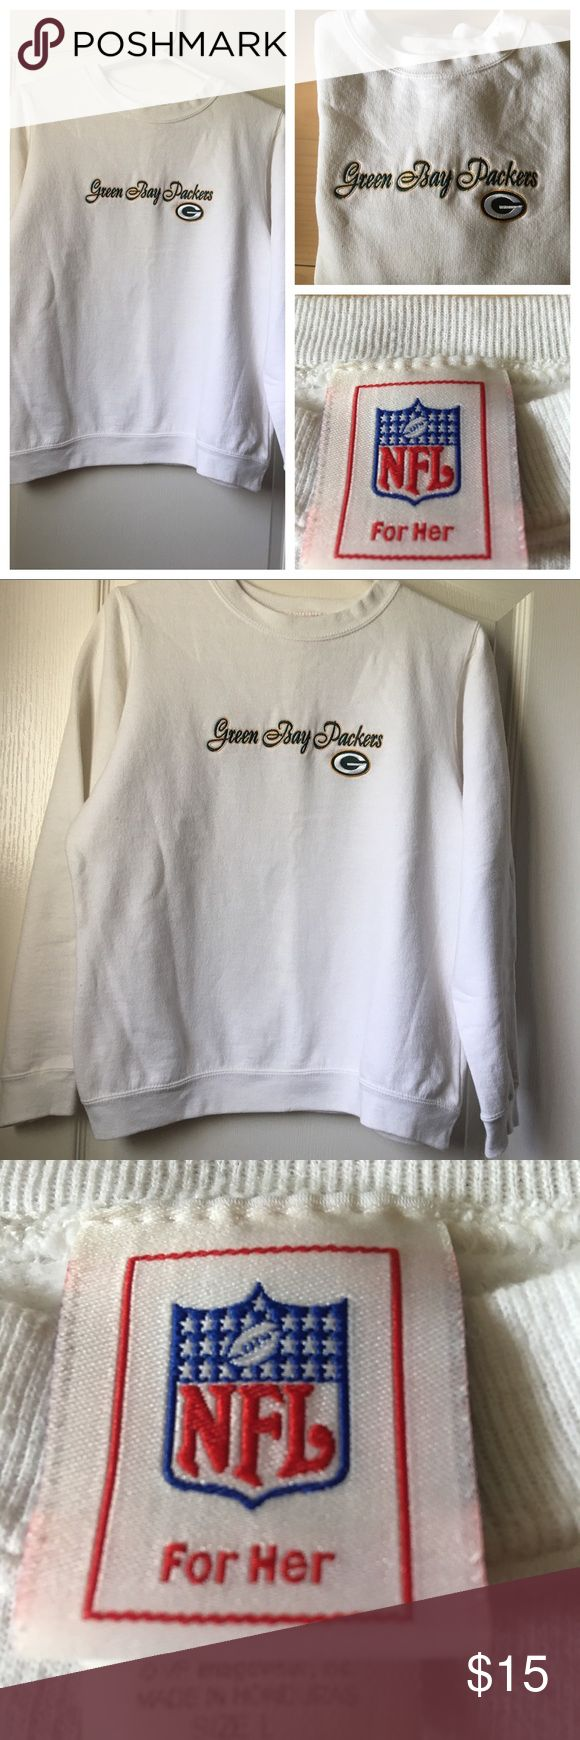 NFL Green Bay Packers Sweatshirt Packers White Sweatshirt                                   EUC                                                                  Size: Large NFL Other